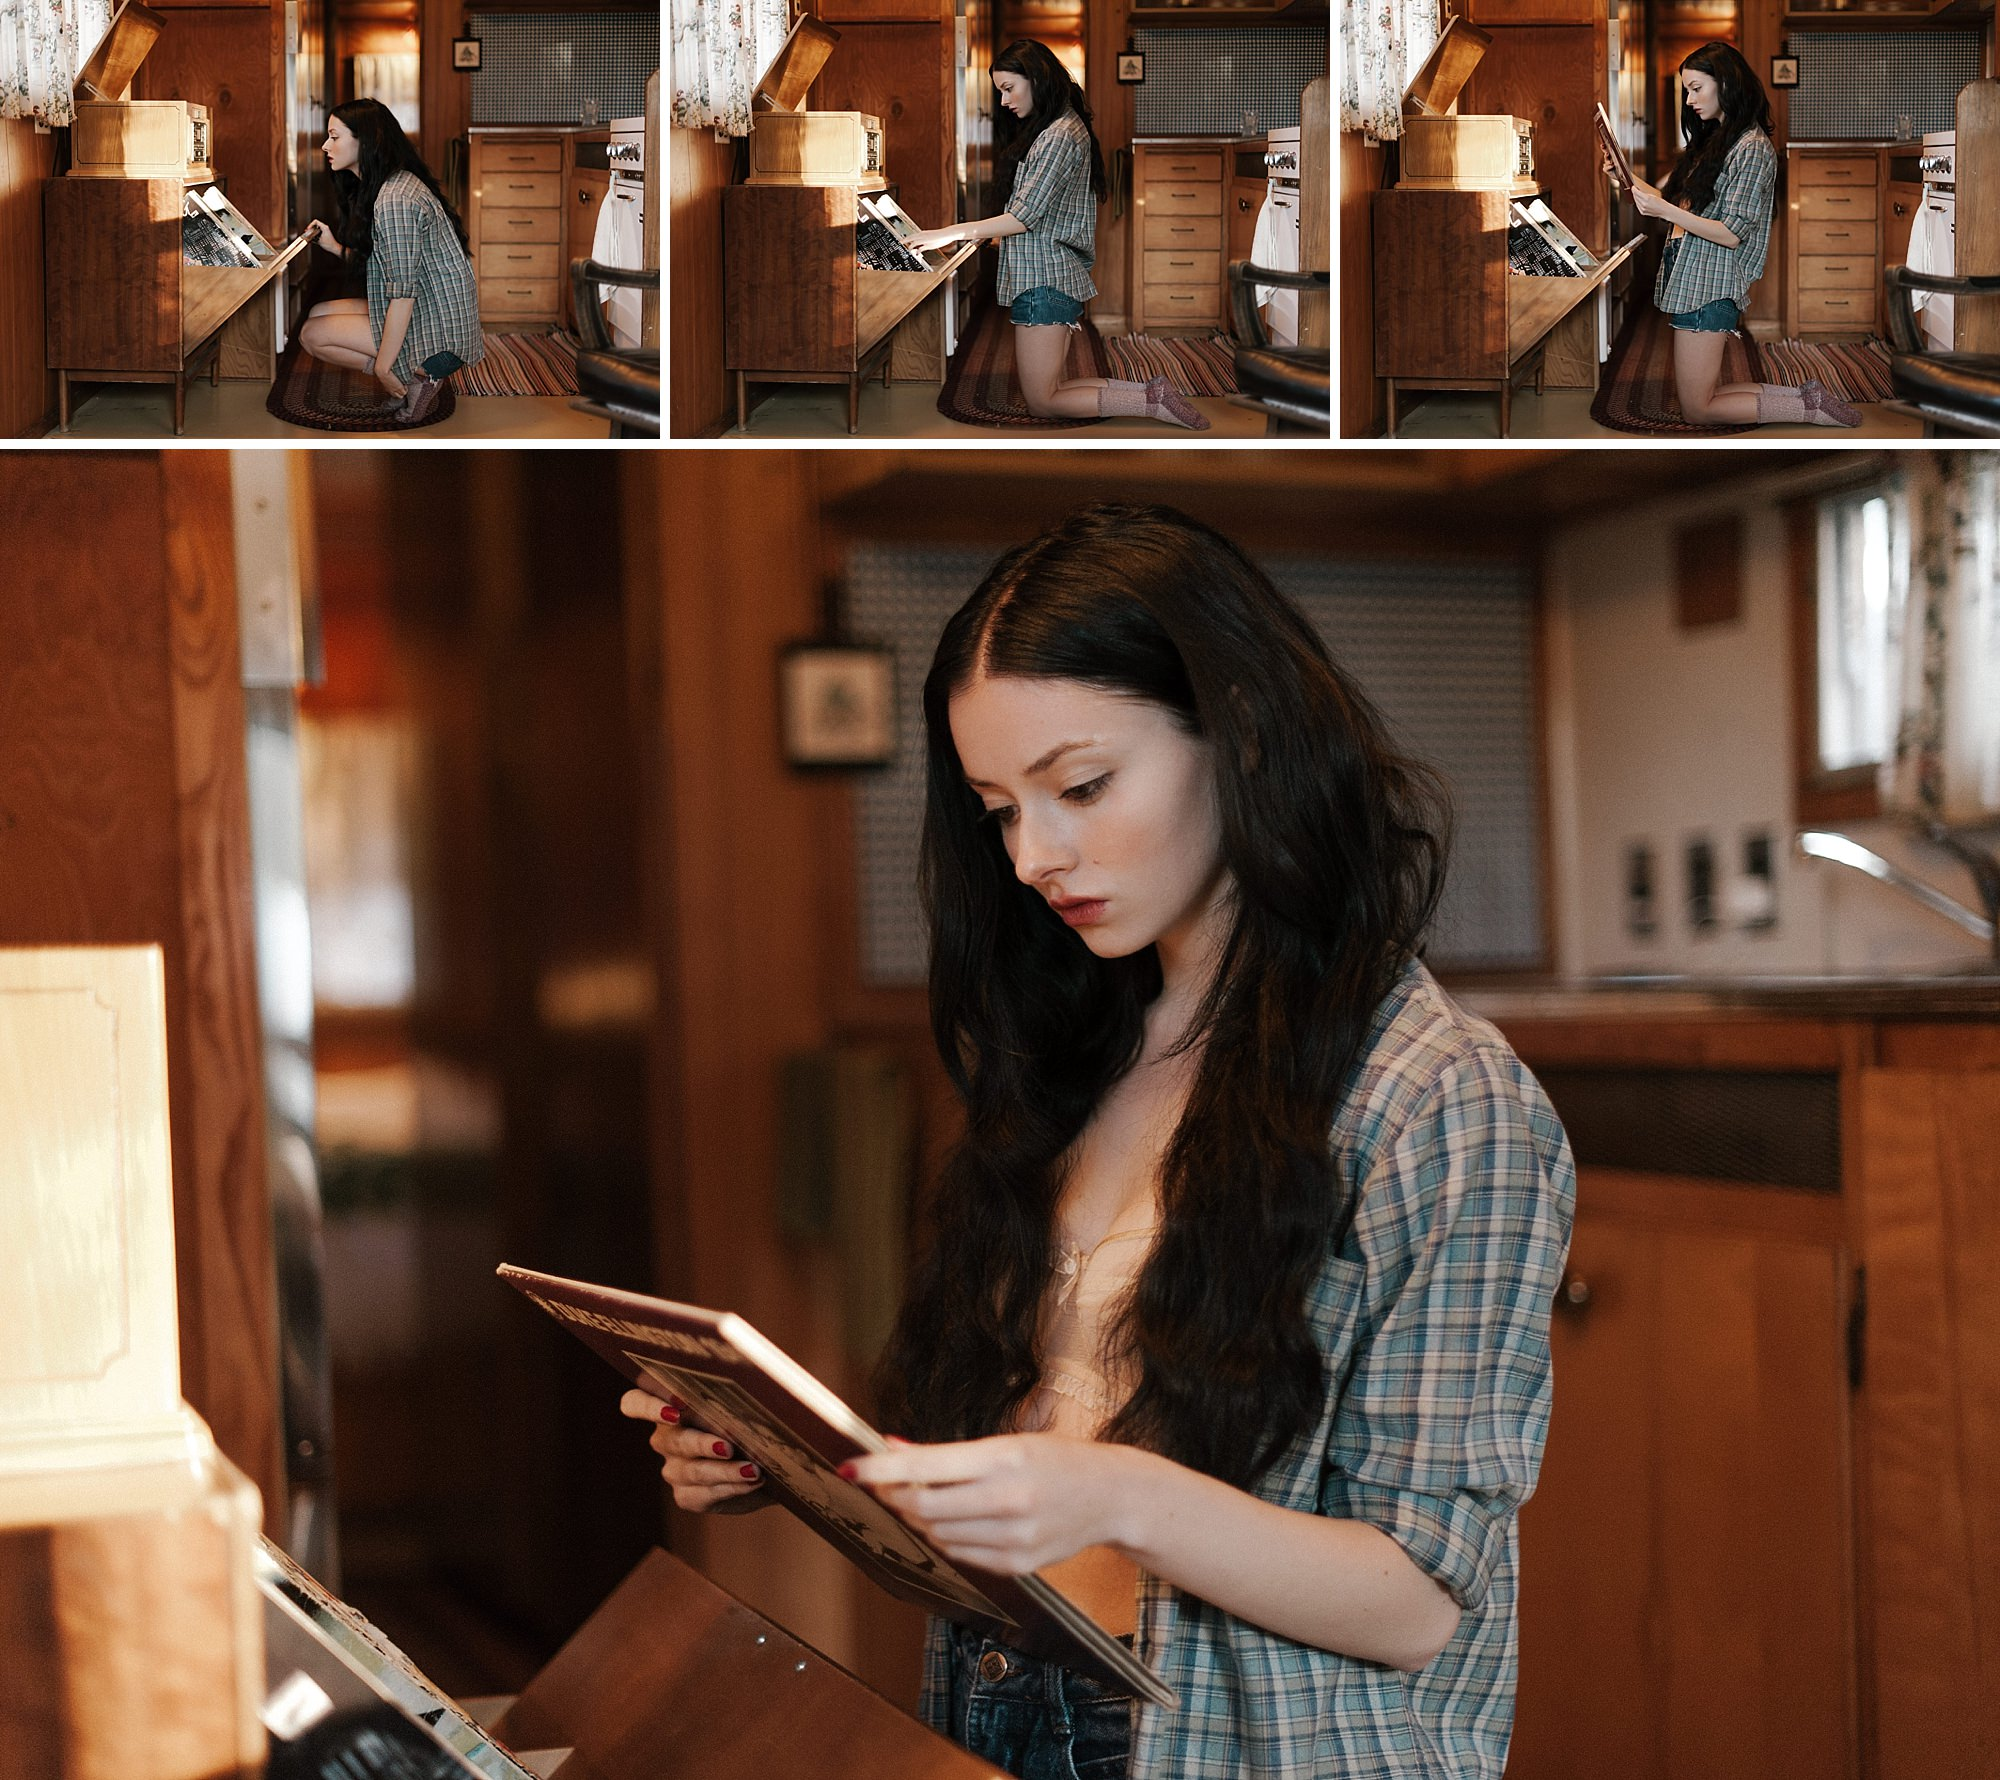 A young woman looks through records. By Seattle boudoir photographer Briana Morrison